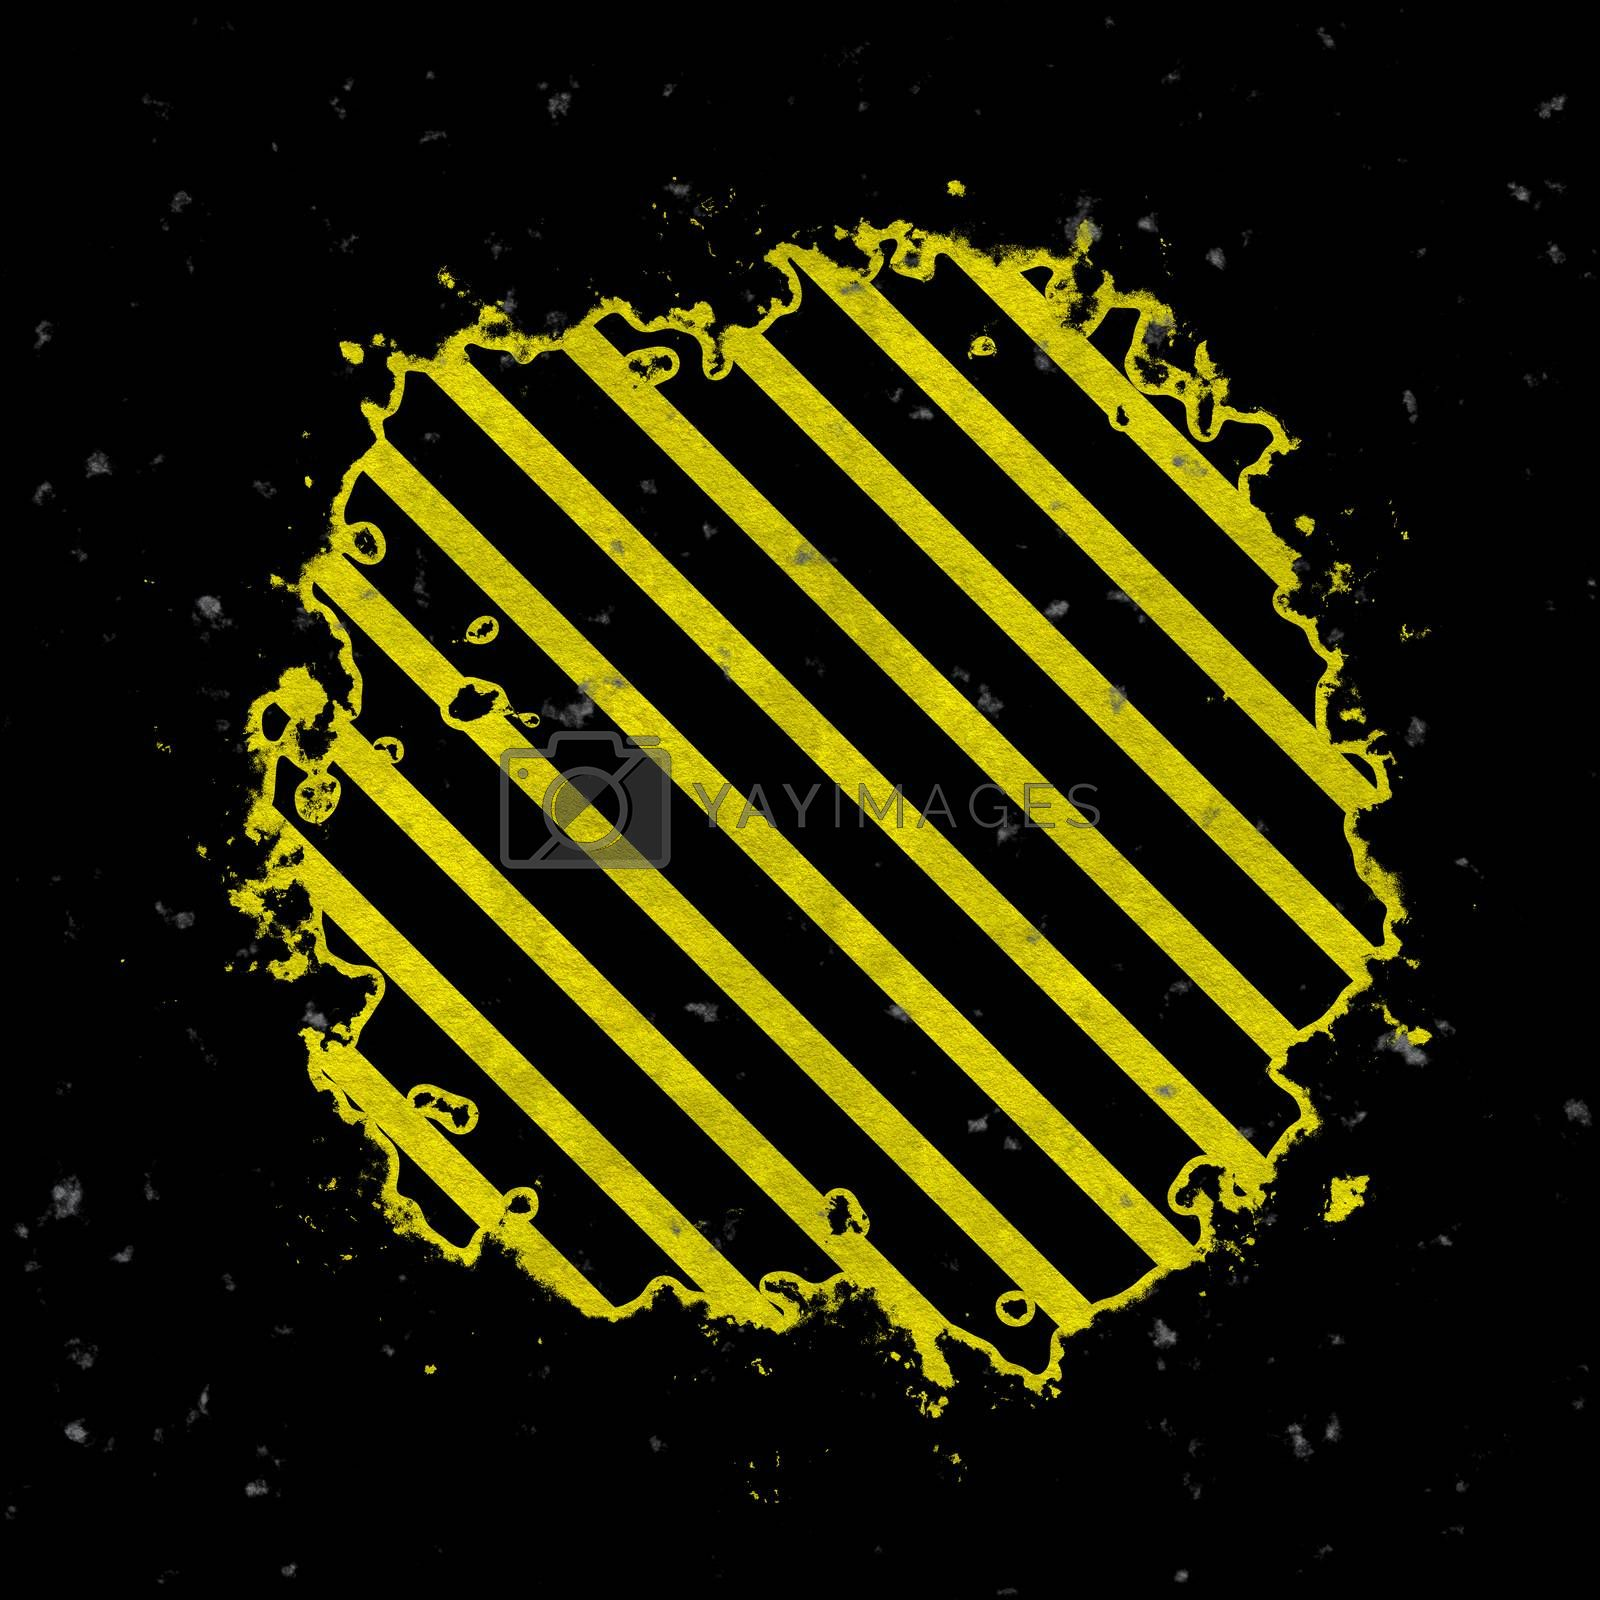 A hazard stripes background with grungy splatter textures isolated over a black background.